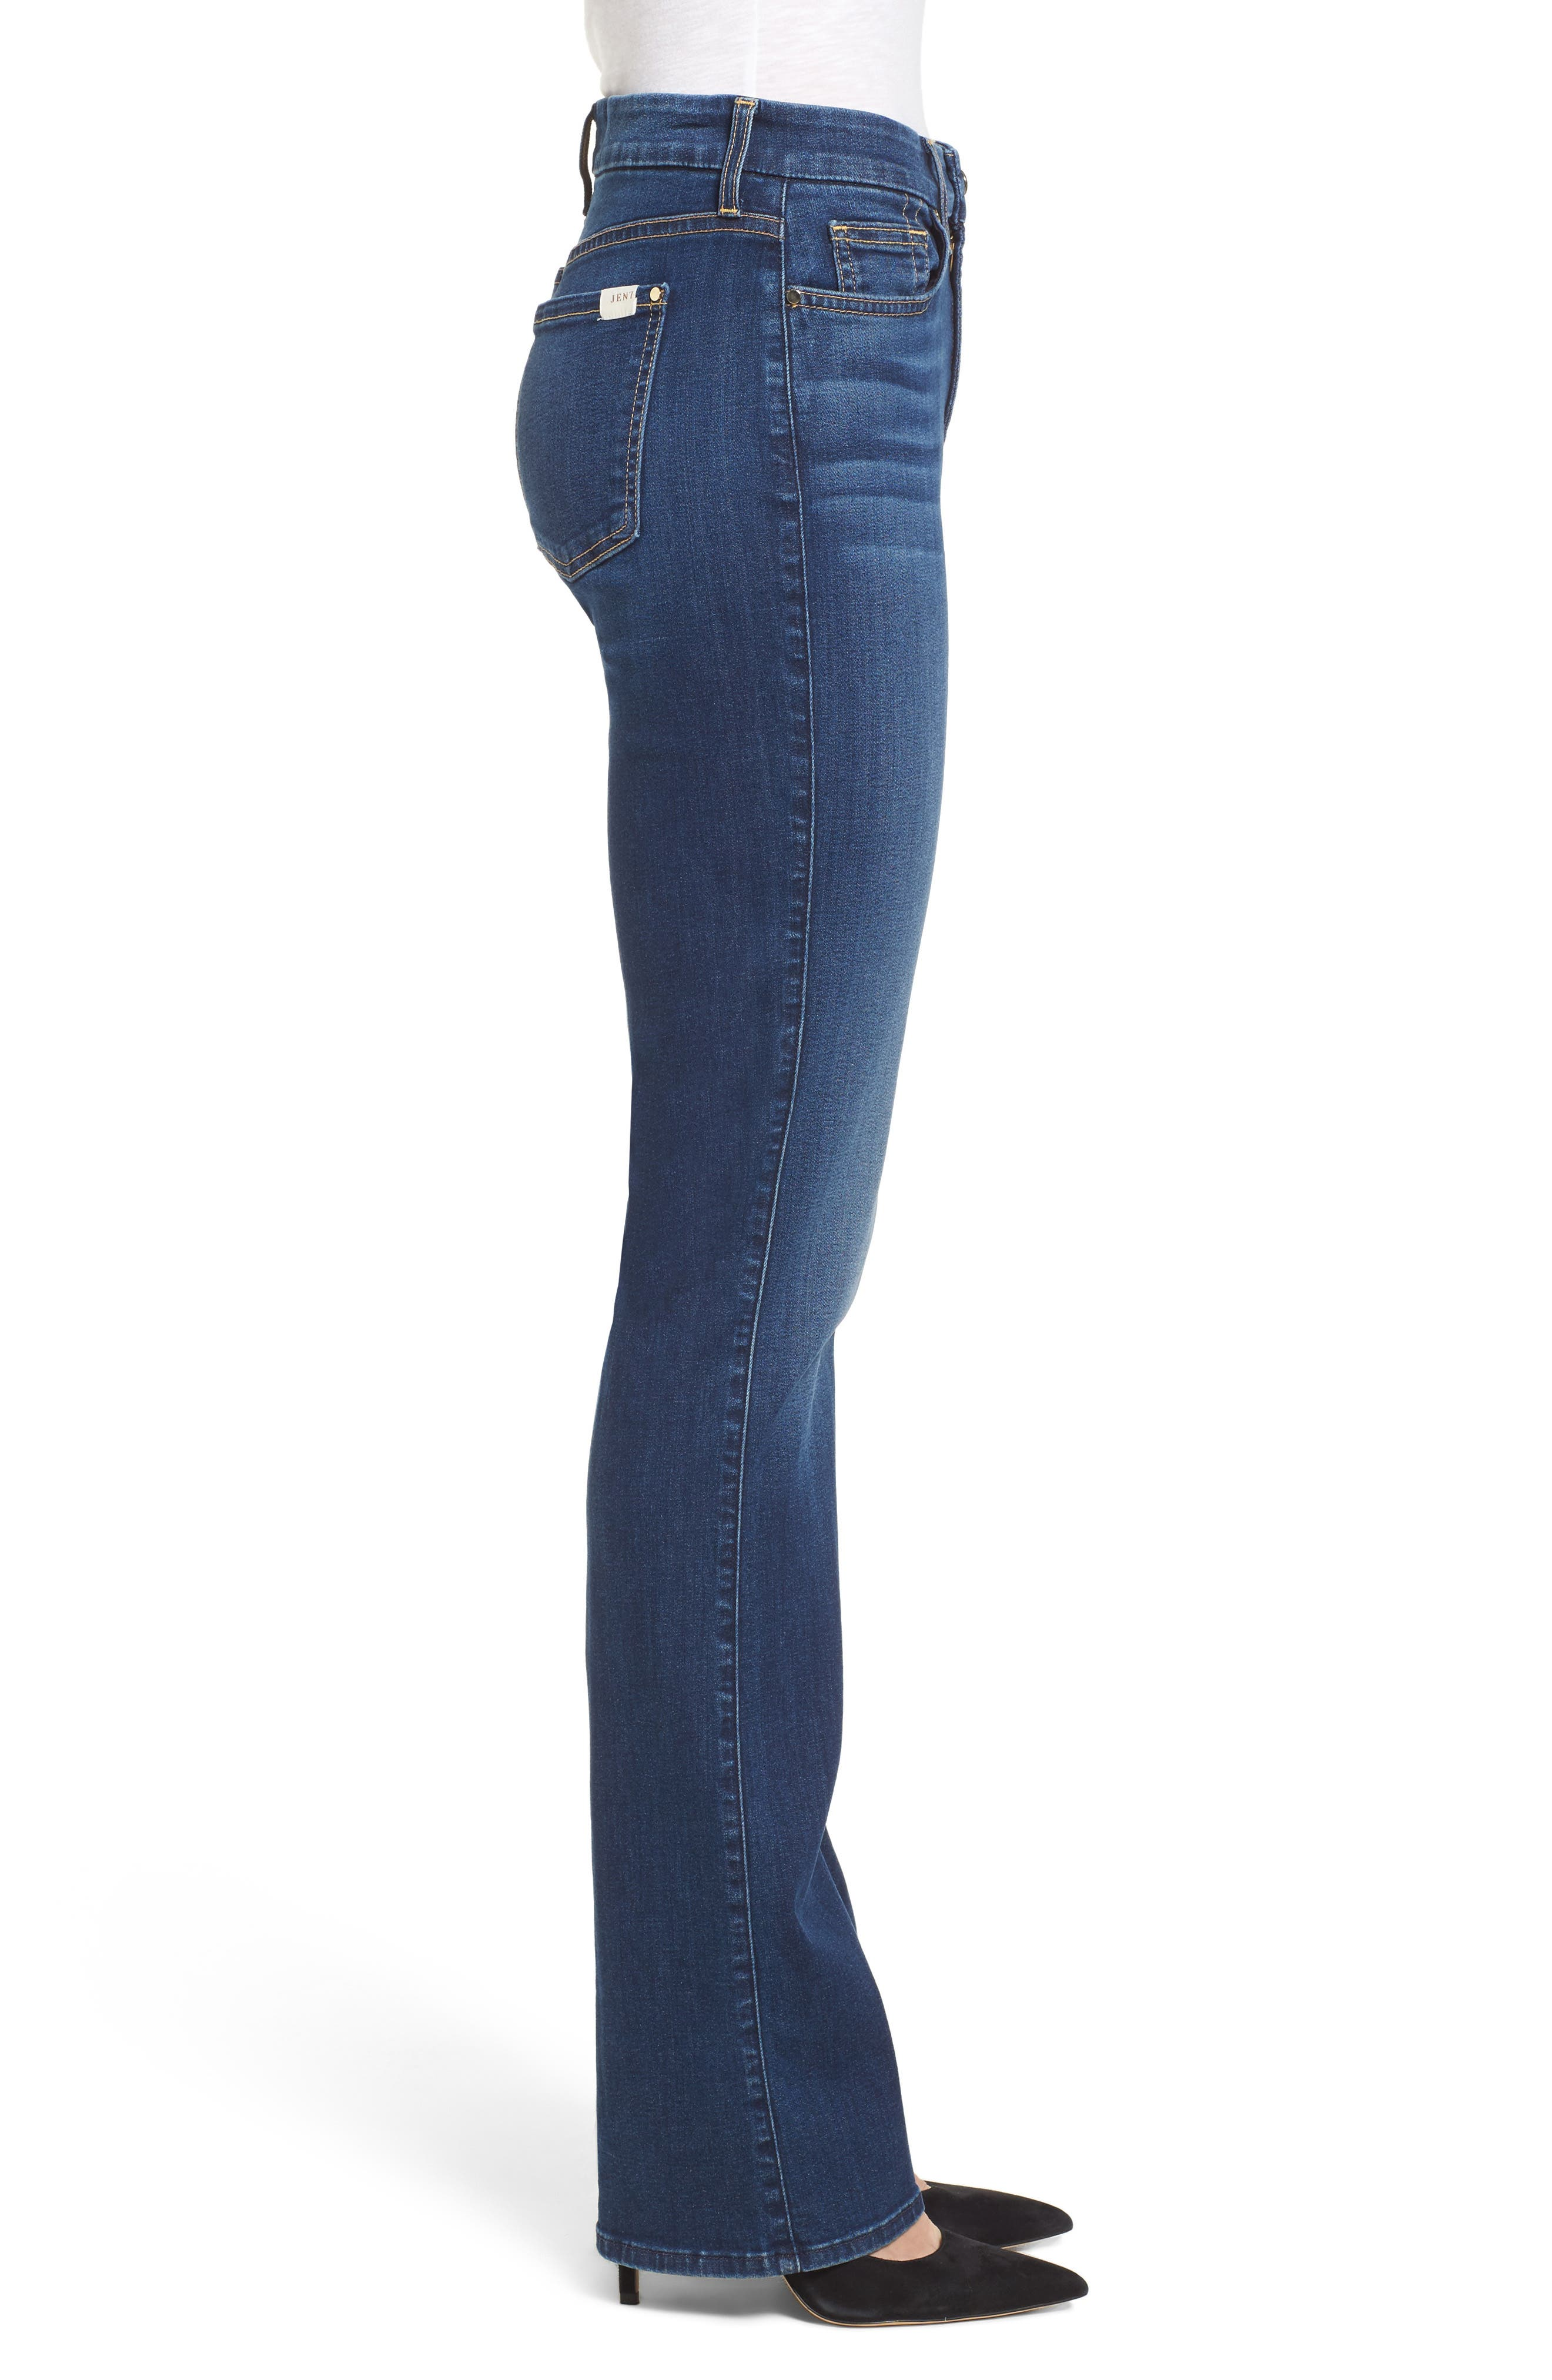 JEN7 BY 7 FOR ALL MANKIND, Slim Bootcut Jeans, Alternate thumbnail 3, color, RICHE TOUCH MEDIUM BLUE